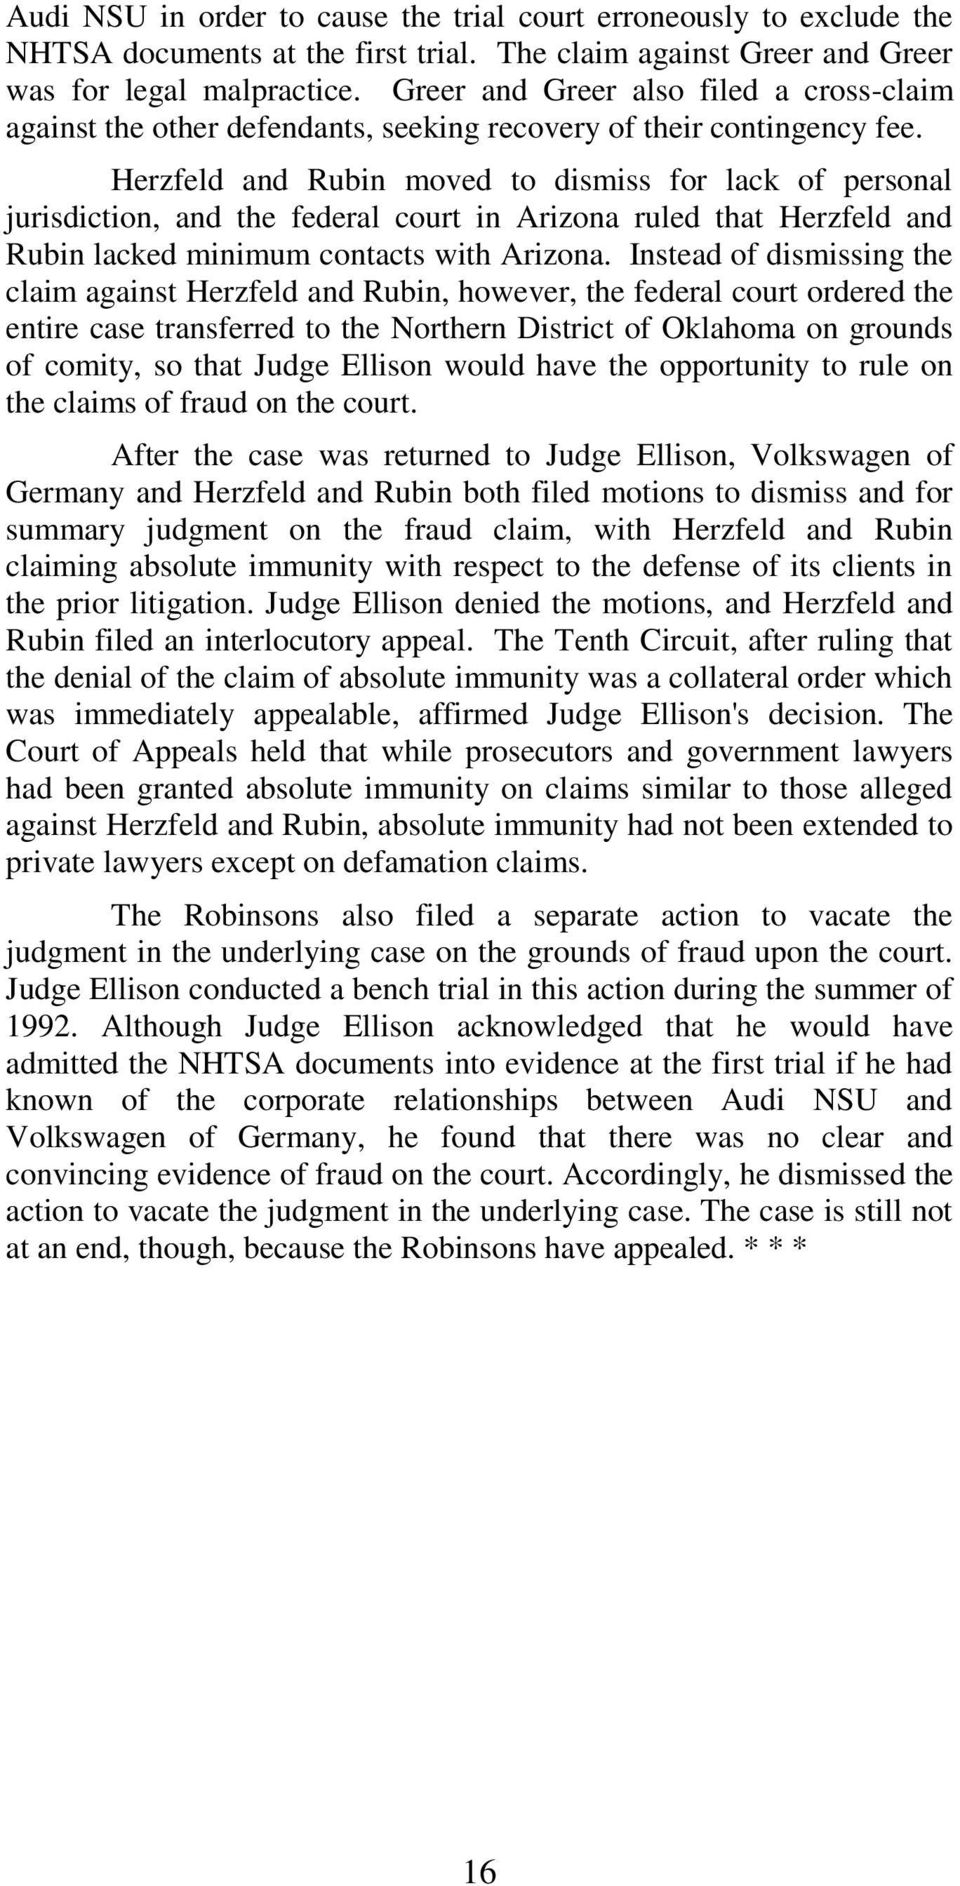 Herzfeld and Rubin moved to dismiss for lack of personal jurisdiction, and the federal court in Arizona ruled that Herzfeld and Rubin lacked minimum contacts with Arizona.